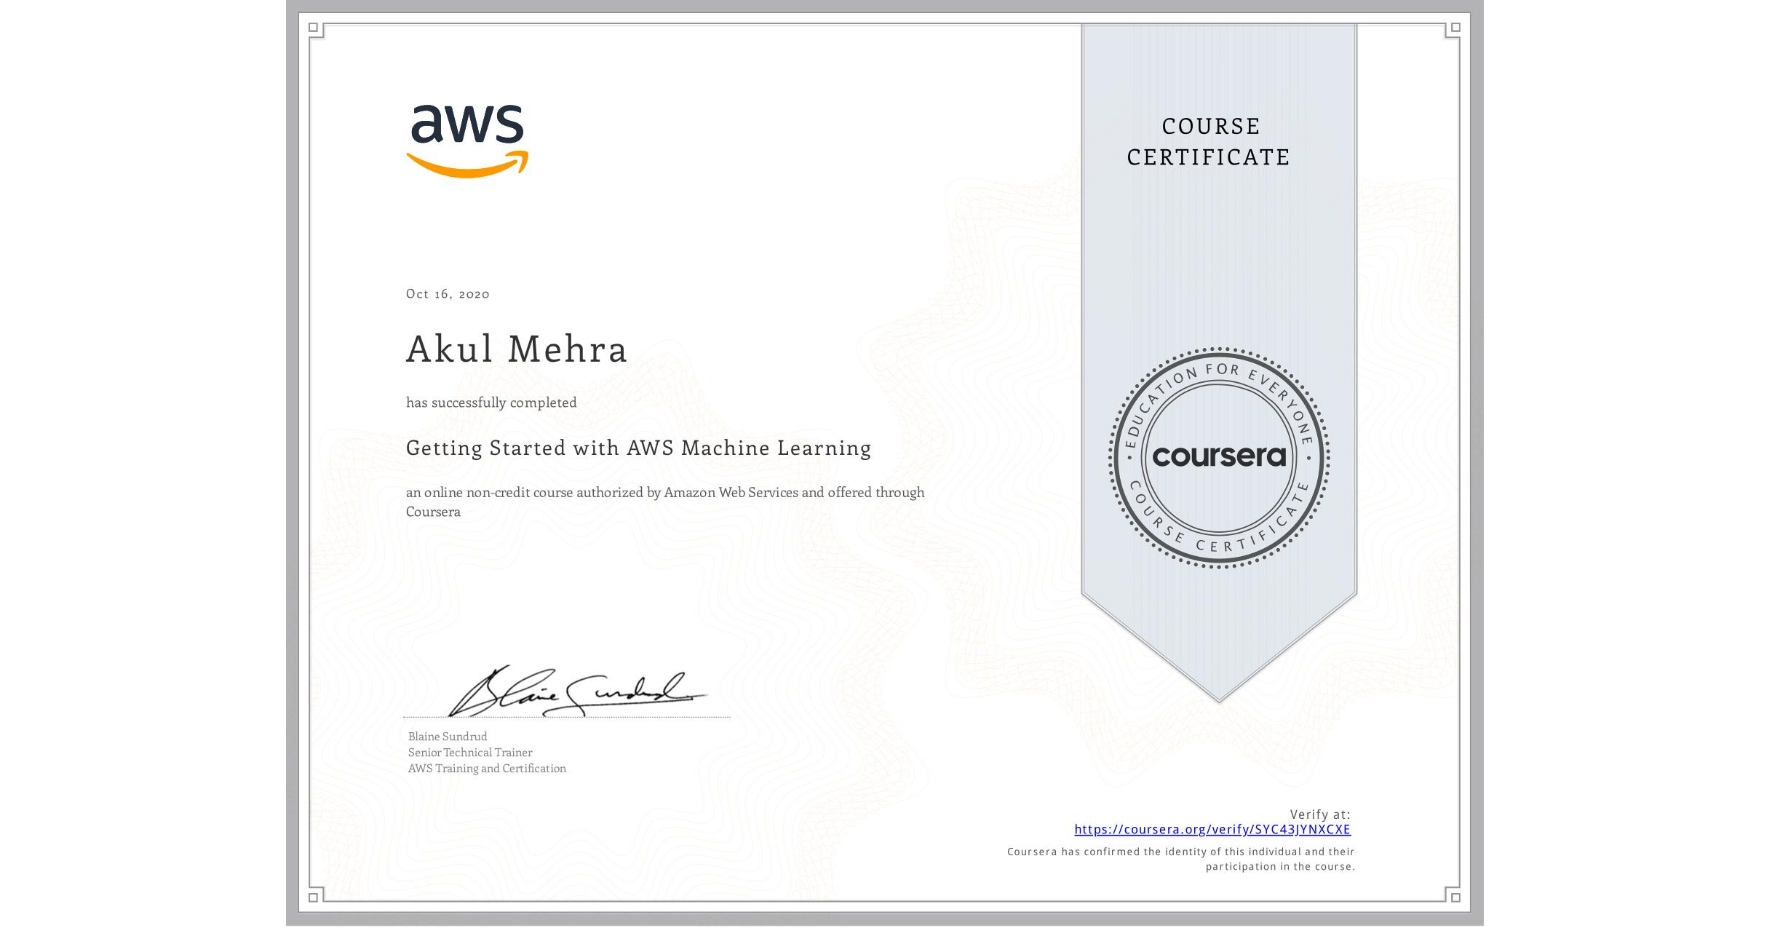 View certificate for Akul Mehra, Getting Started with AWS Machine Learning, an online non-credit course authorized by Amazon Web Services and offered through Coursera